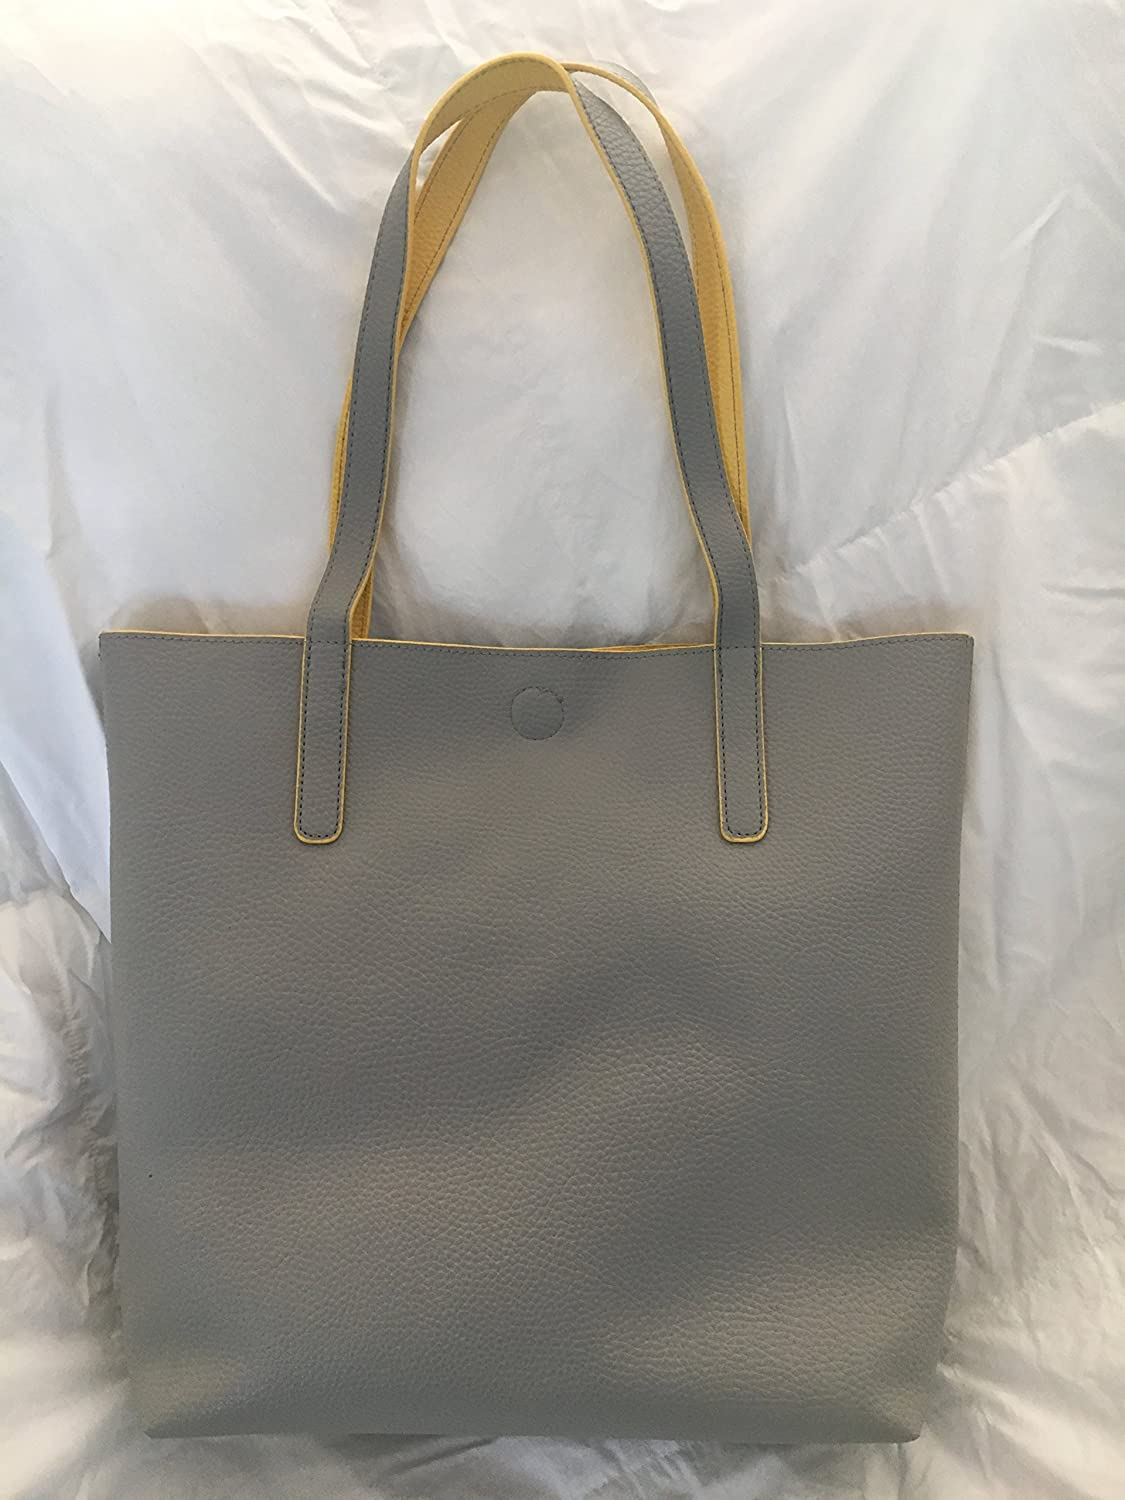 Personalized Faux 5% OFF Leather Tote Bag Tot Custom New item